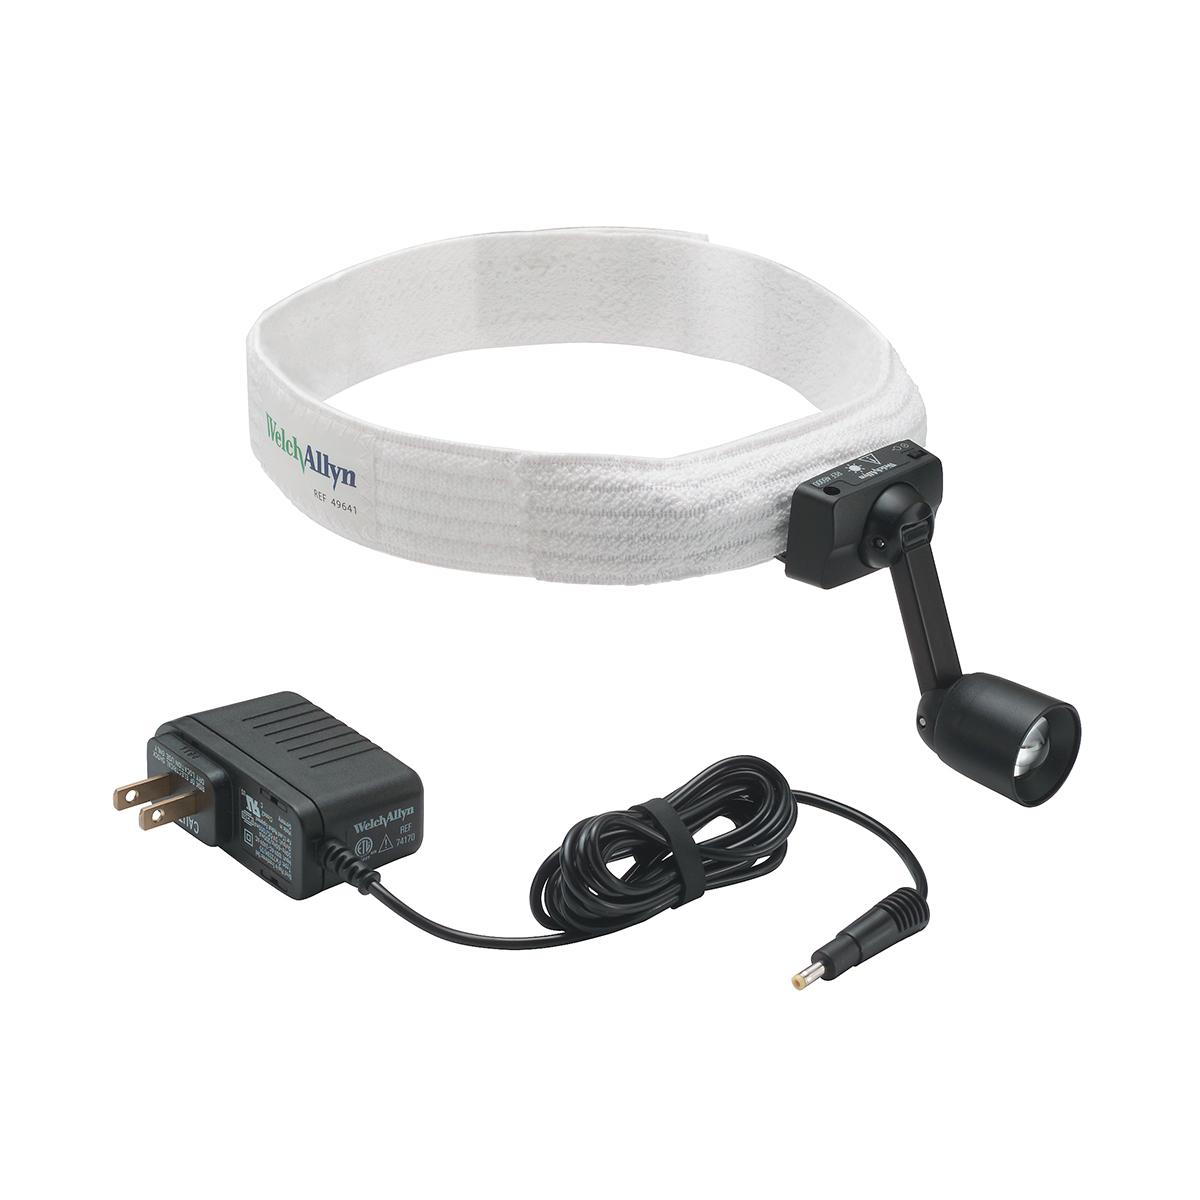 Green Series Portable Headlight Veterinary on headband with power cord